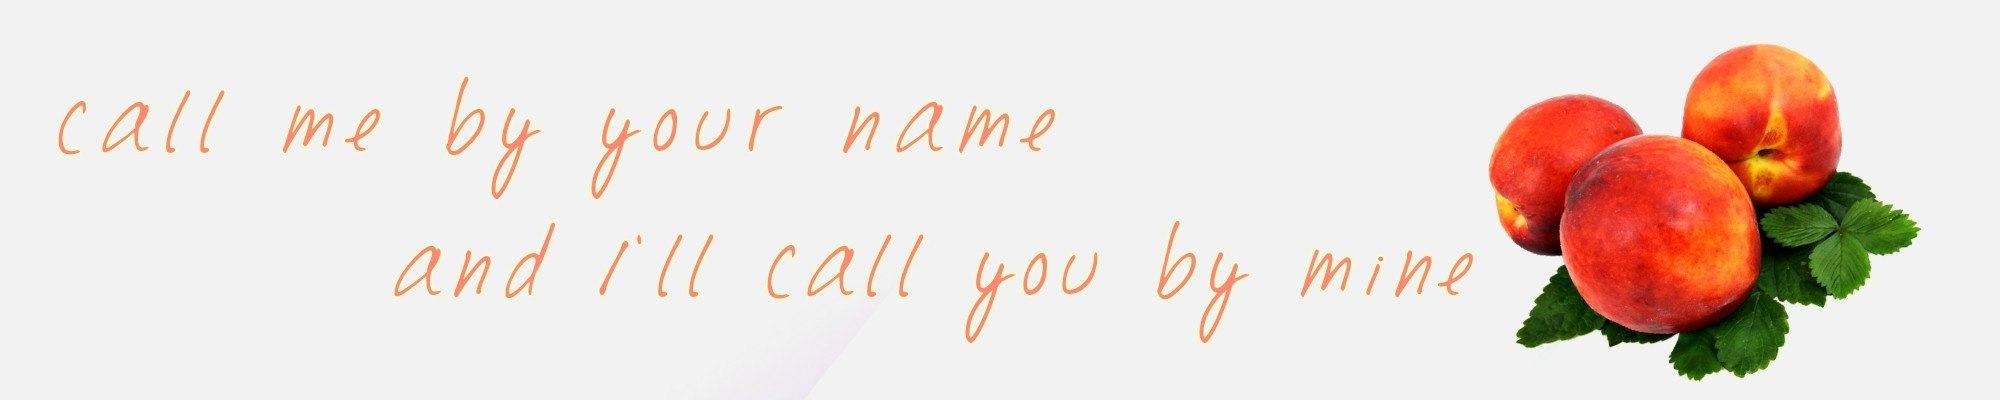 Call Me By Your Name banner/header #madebyme #proud #callmebyyourname #elio  #elioperlman #oliver #peach #peaches #phonto #picsart #header